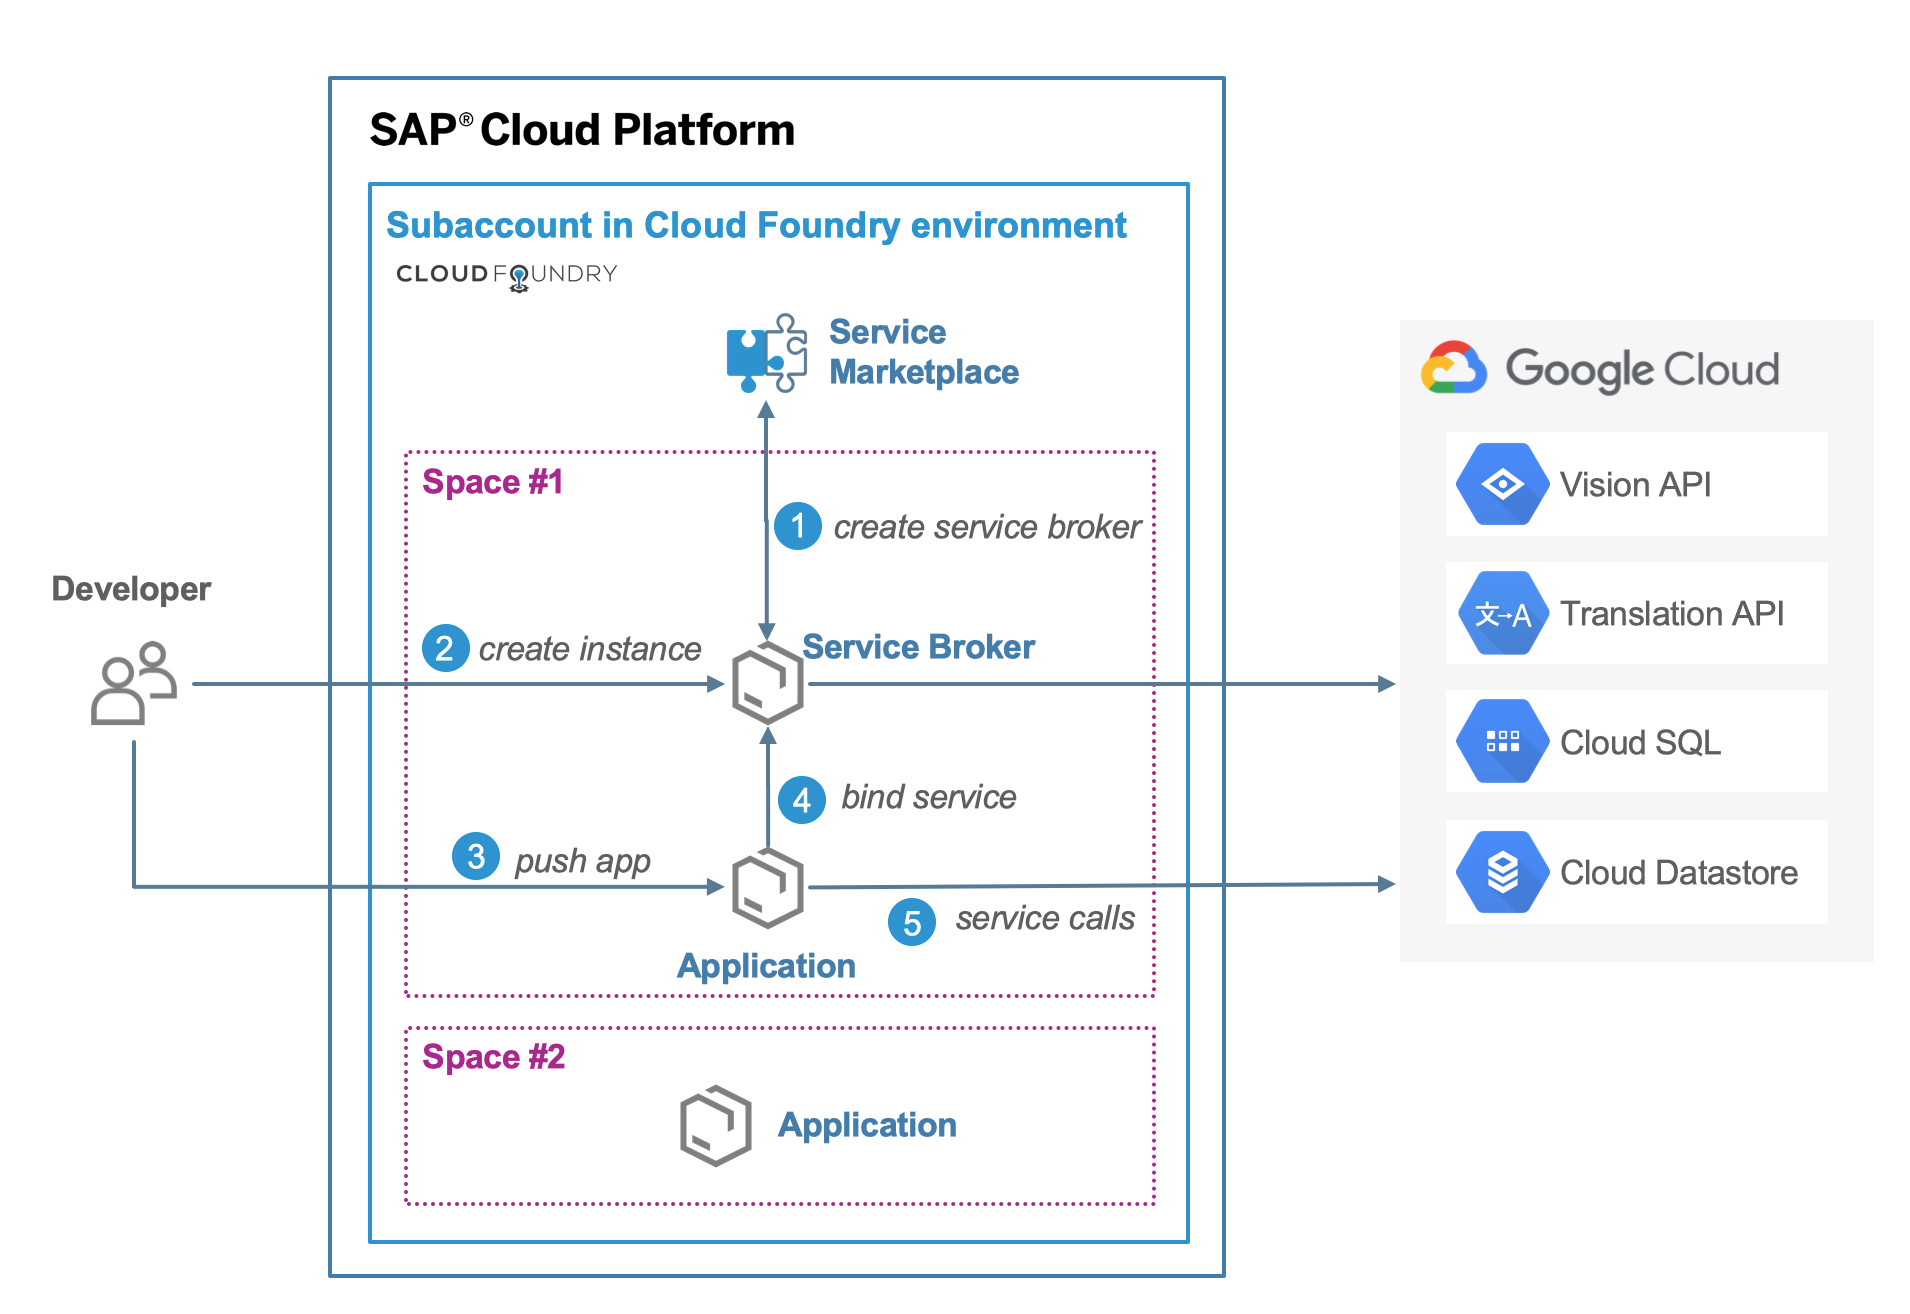 Accessing GCP services from Cloud Foundry on SAP Cloud Platform